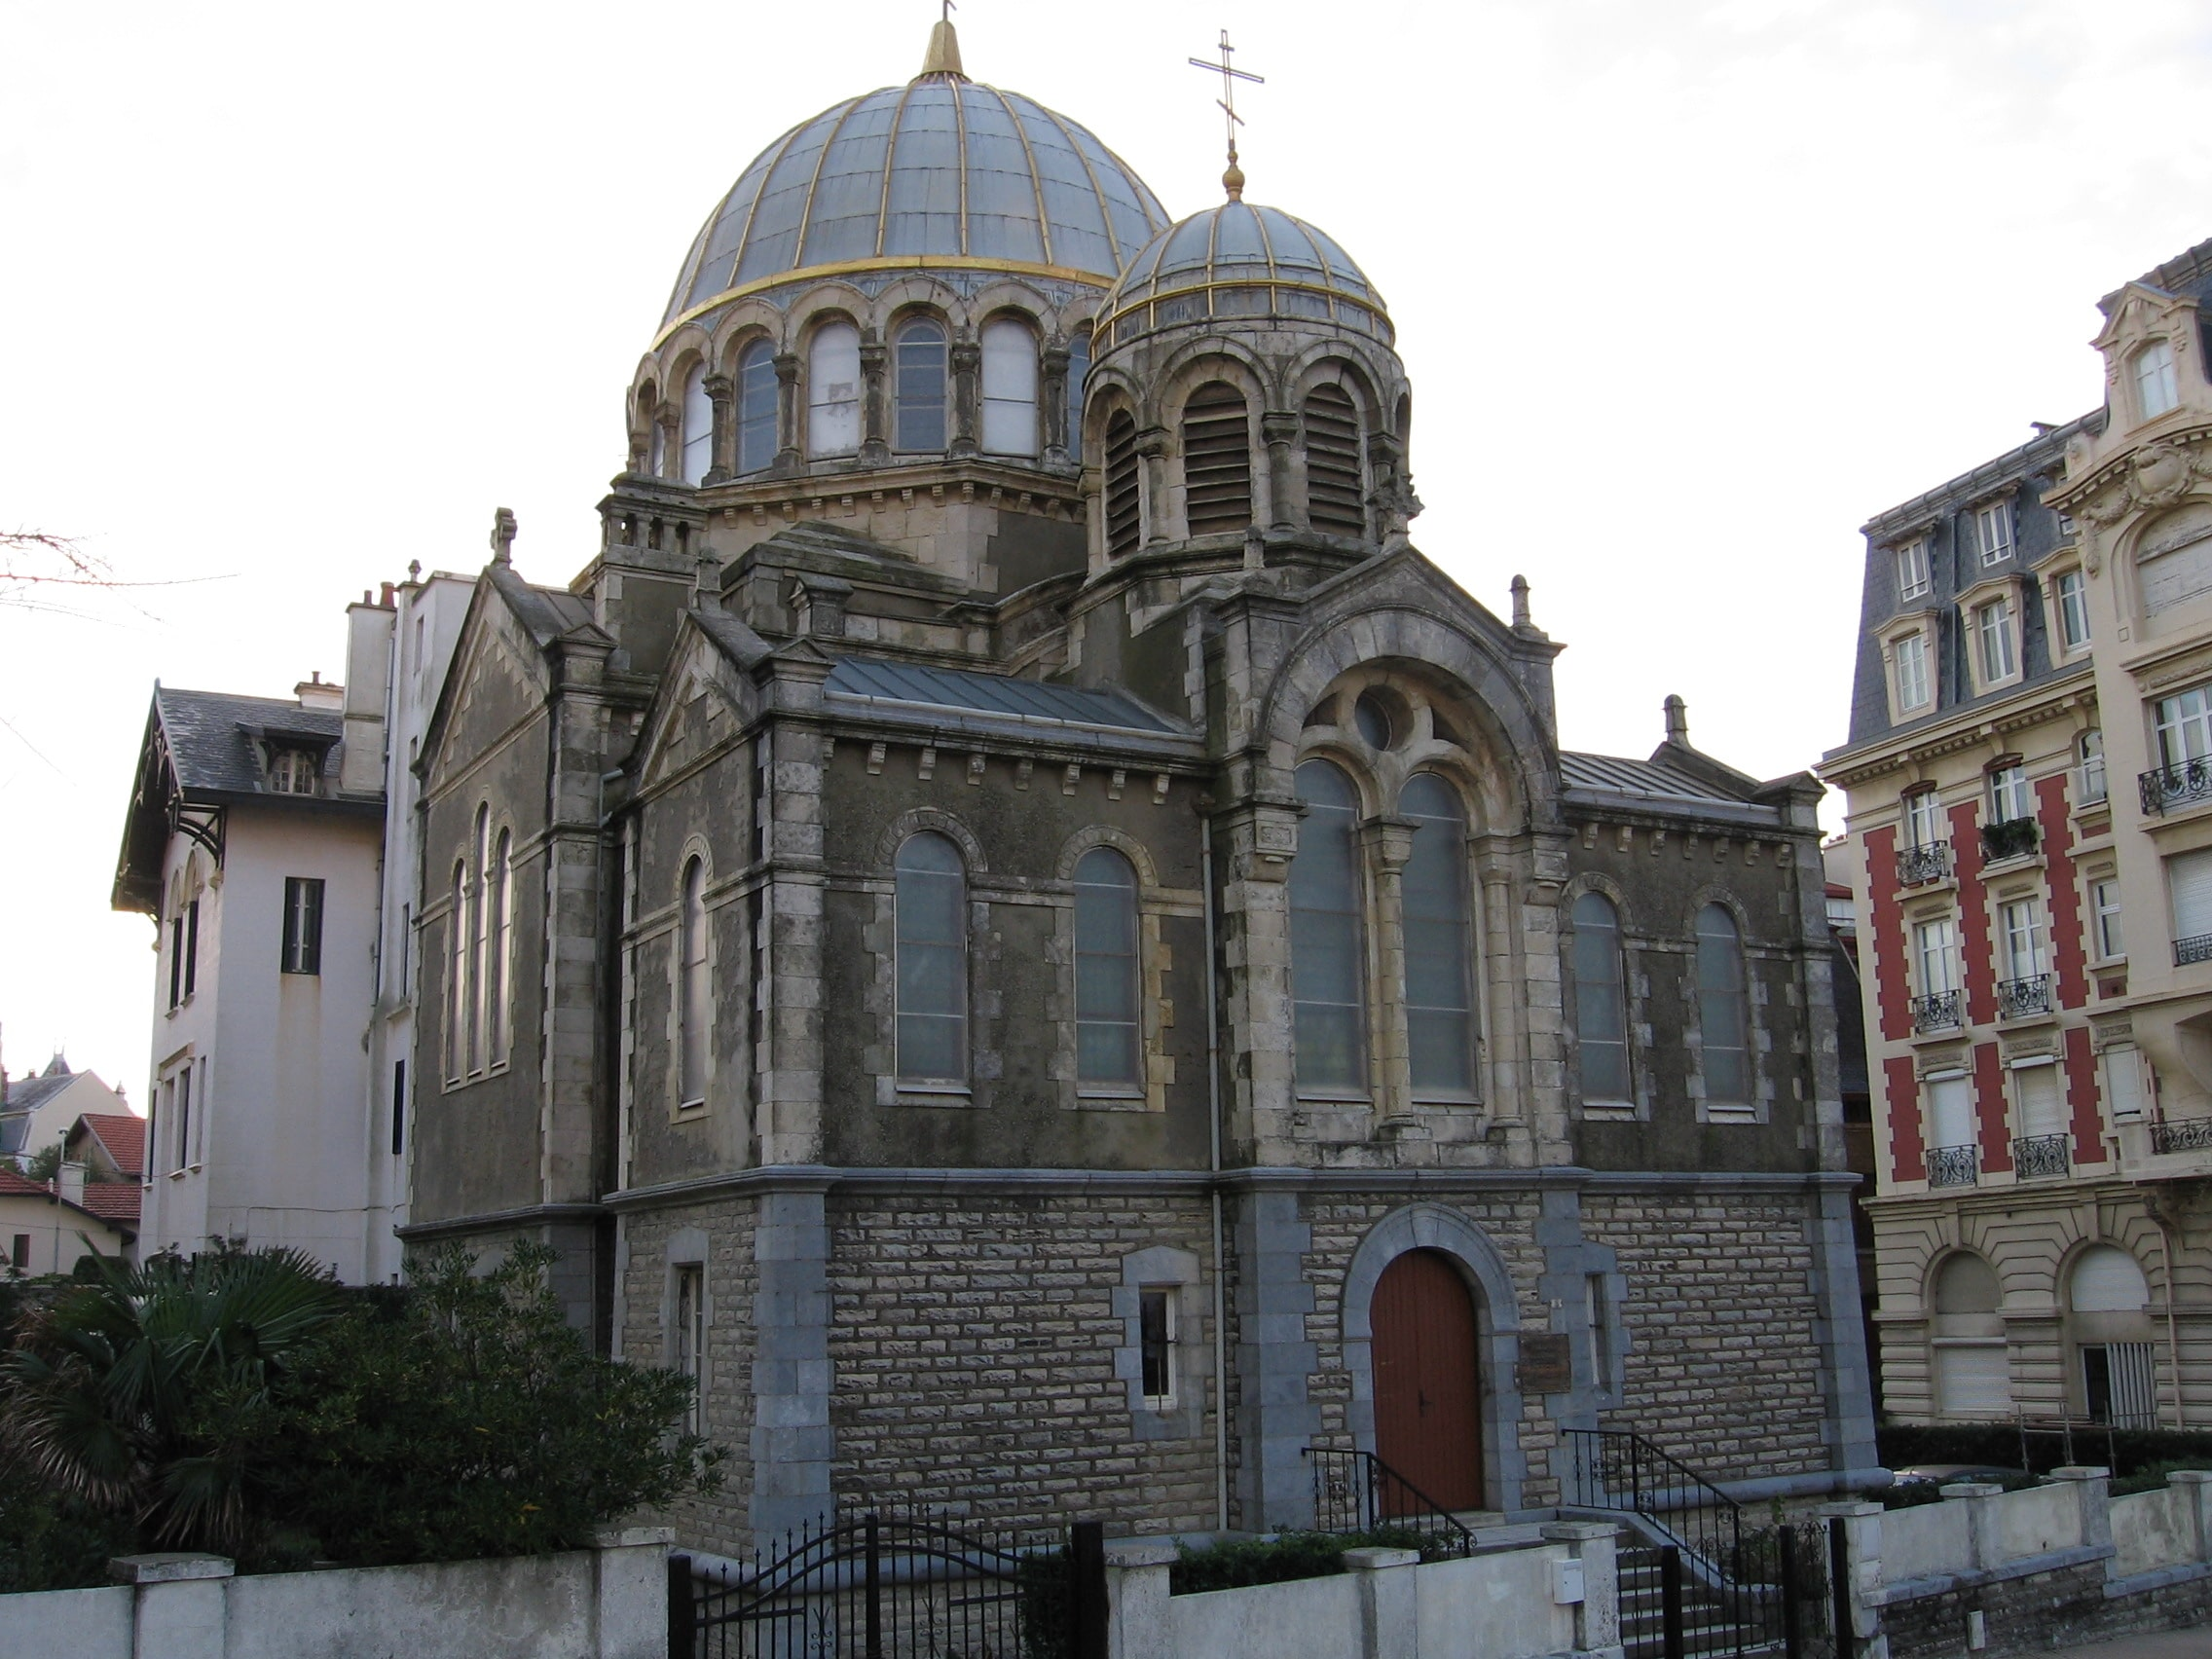 Saint Alexander Nevsky and Protection of the Mother of God Church in Biarritz was selected for the Loto du Patrimoine